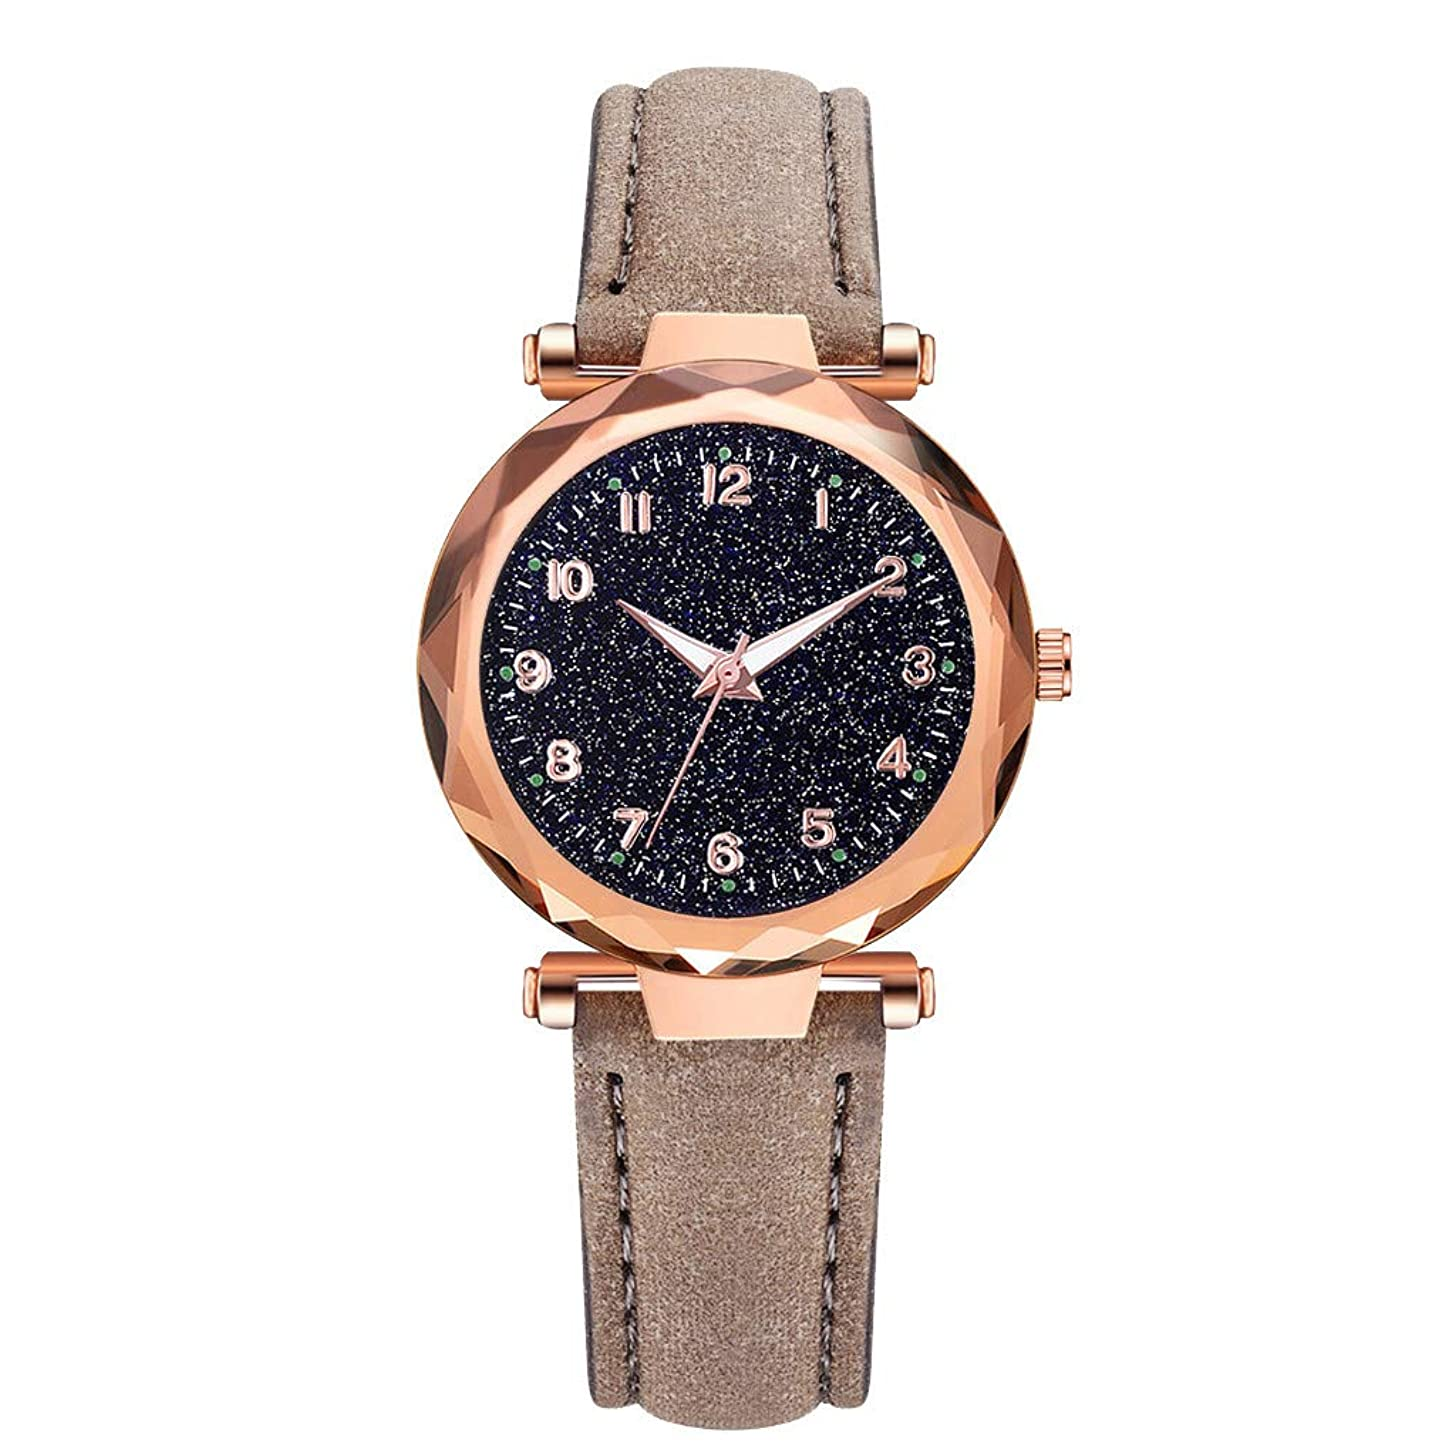 LUCAMORE Womens Luxury Analog Luminous Watches Quartz Wristwatch Starry Sky Dial With Leather Strap Casual Watch Jewelry Gift